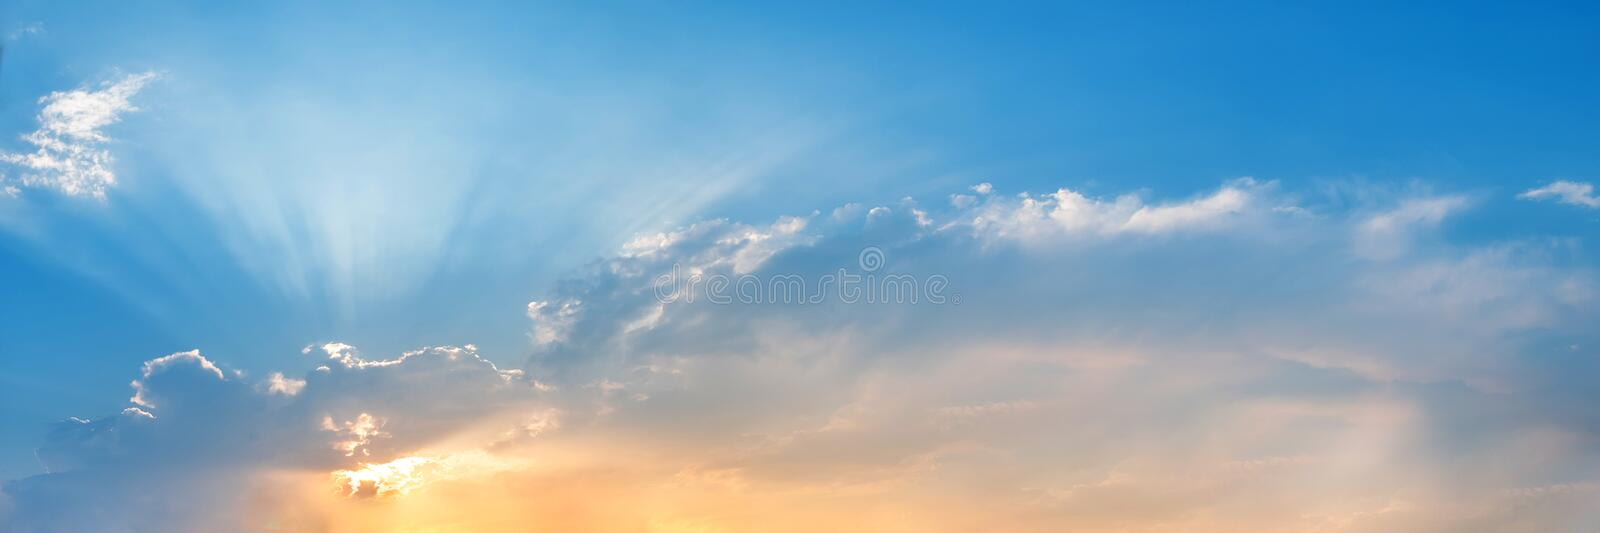 Dramatic panorama sky with cloud on sunrise and sunset time. Panoramic image stock photography